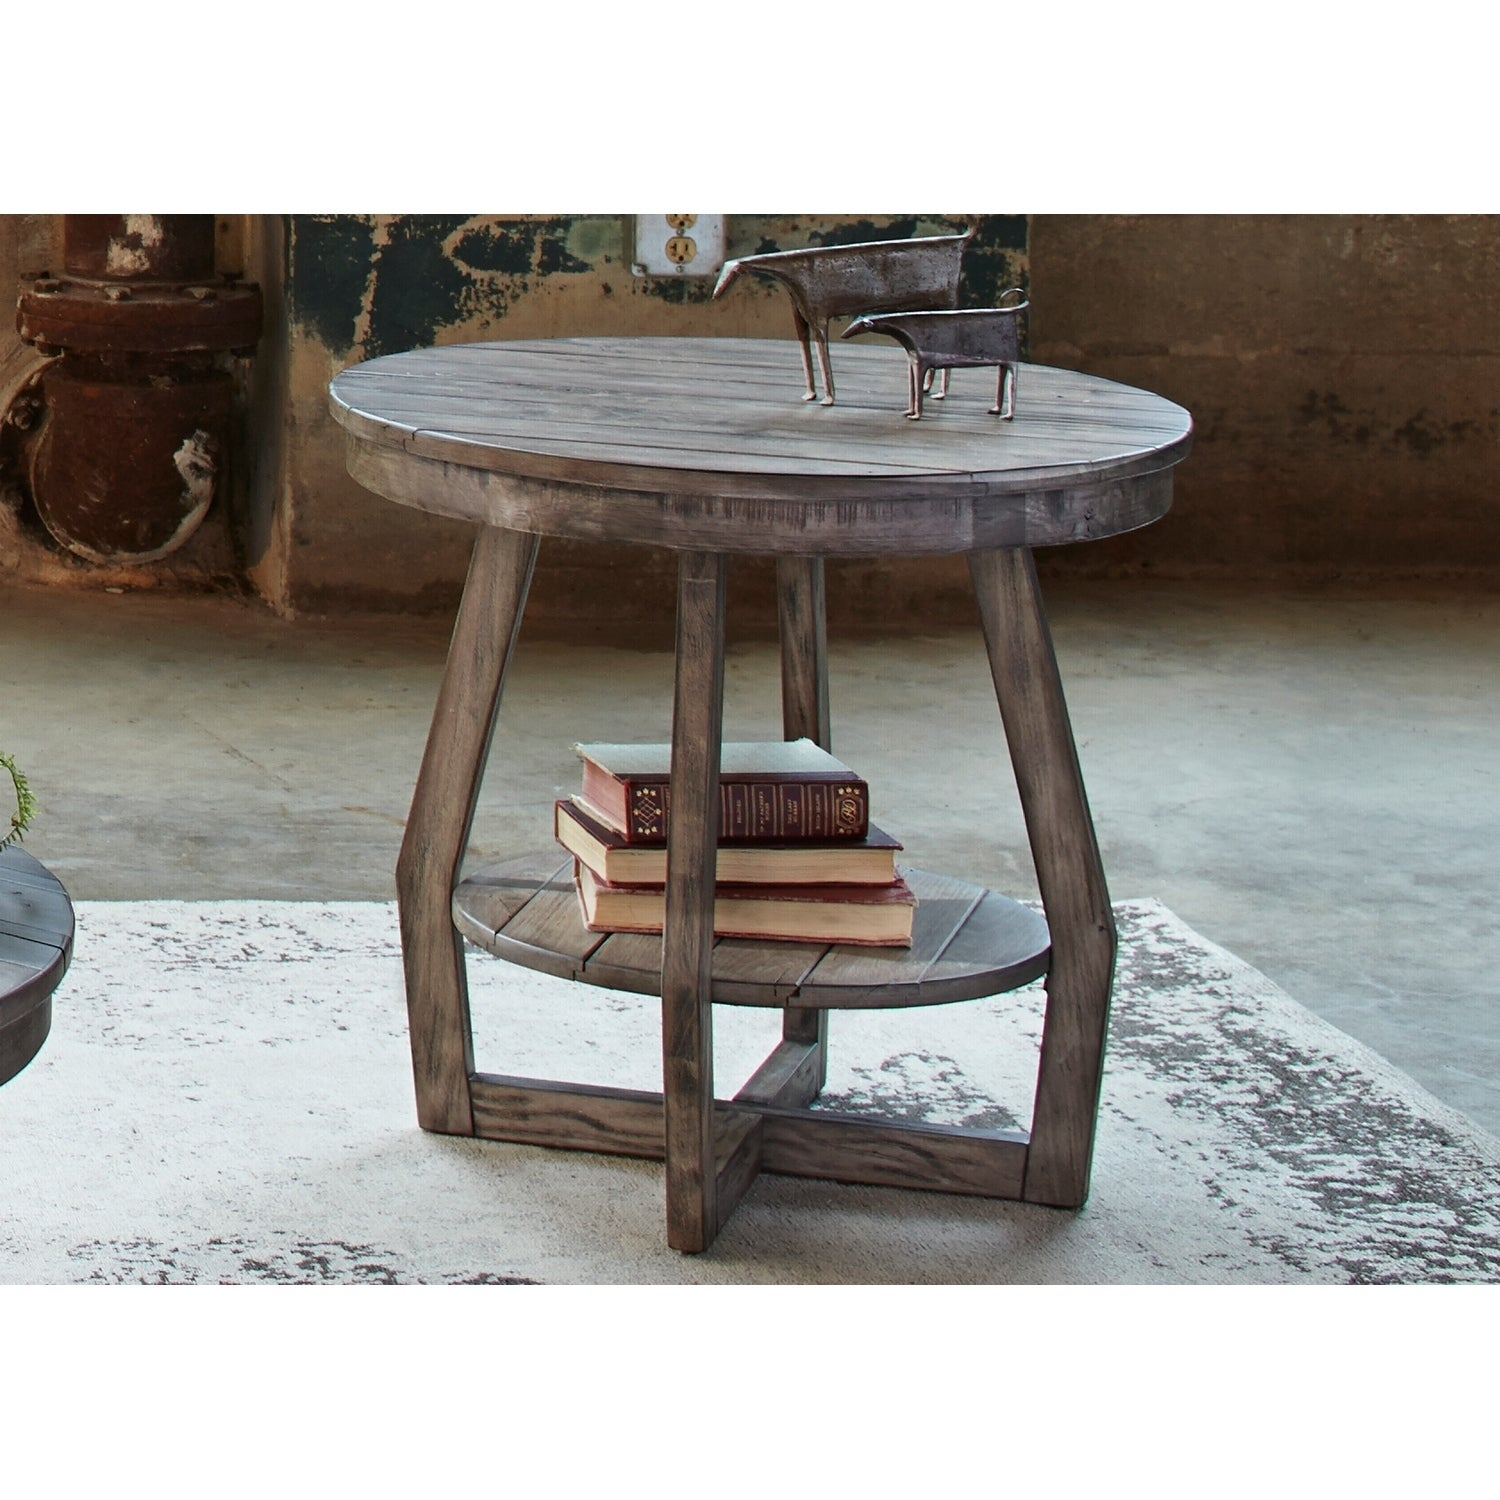 4096de54f8b Shop The Gray Barn Rosings Park Grey Wash Round End Table - Free Shipping  Today - Overstock - 20701542